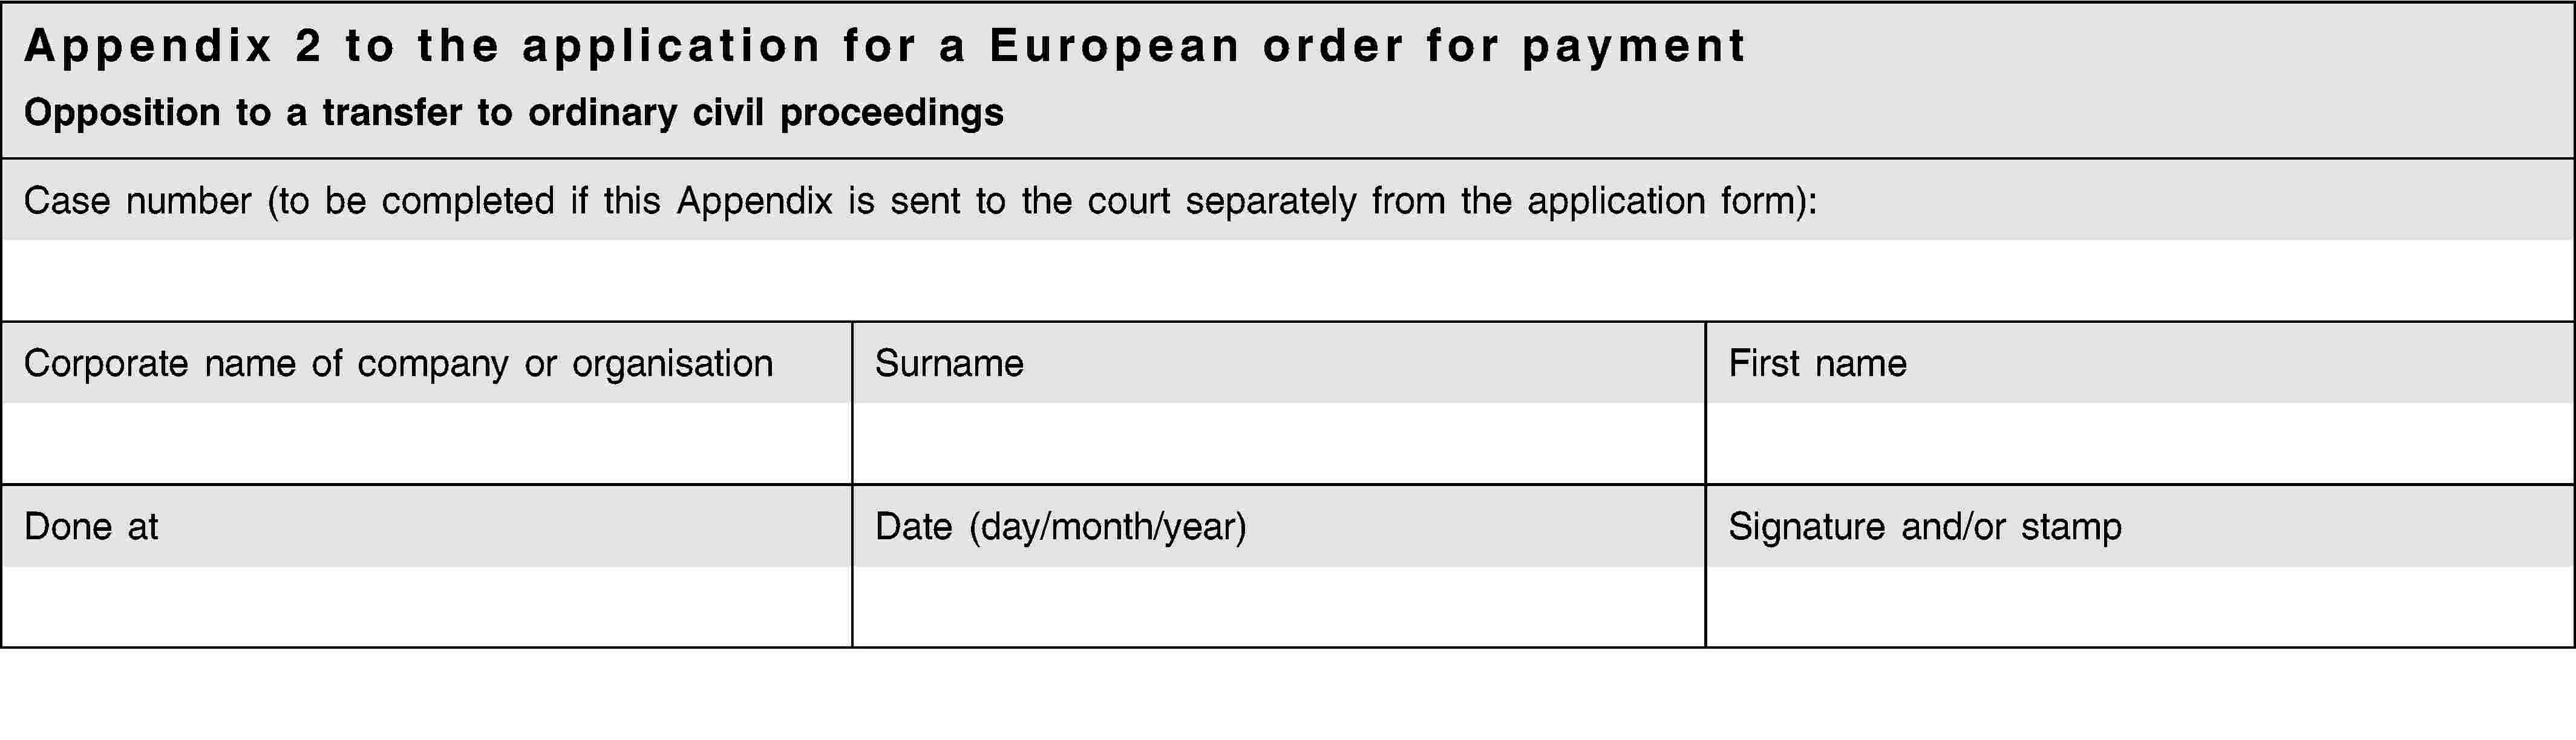 Appendix 2 to the application for a European order for paymentOpposition to a transfer to ordinary civil proceedingsCase number (to be completed if this Appendix is sent to the court separately from the application form):Corporate name of company or organisationSurnameFirst nameDone atDate (day/month/year)Signature and/or stamp